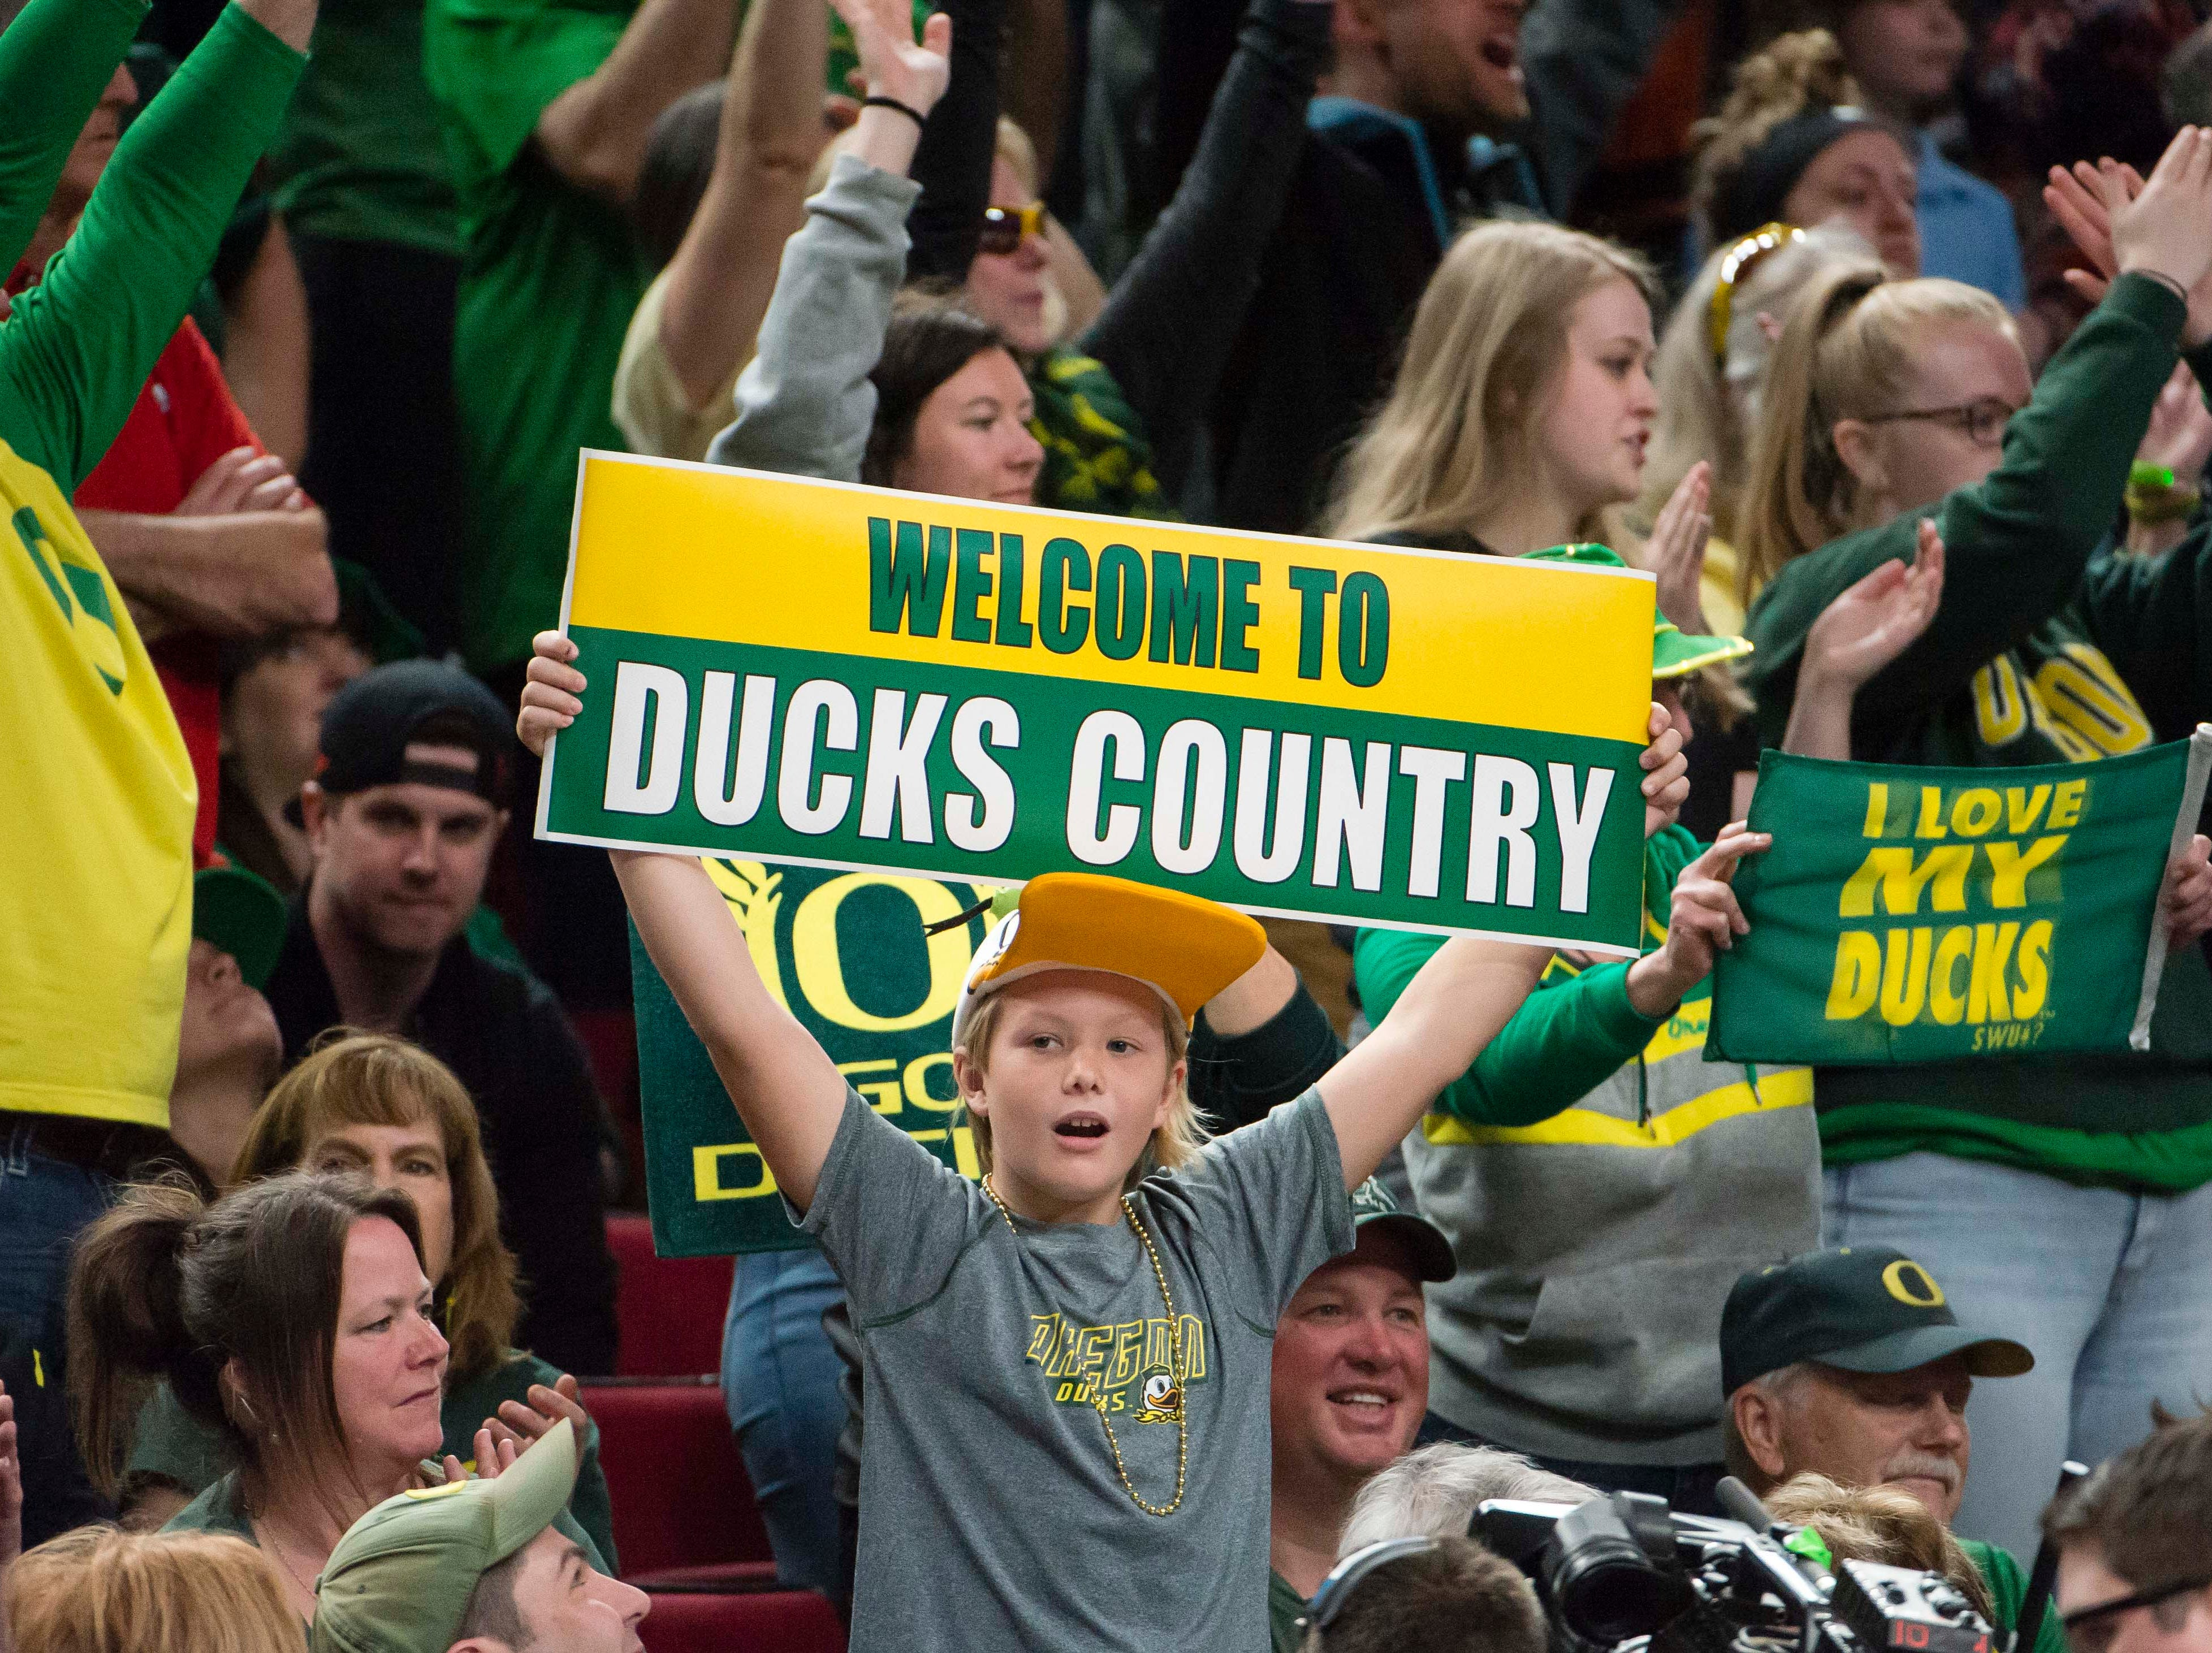 Oregon Ducks fans celebrates during a timeout in the second half agains the Mississippi State Bulldogs in the championship game of the Portland regional in the women's 2019 NCAA Tournament at Moda Center. The Oregon Ducks beat the Mississippi State Bulldogs 88-84.